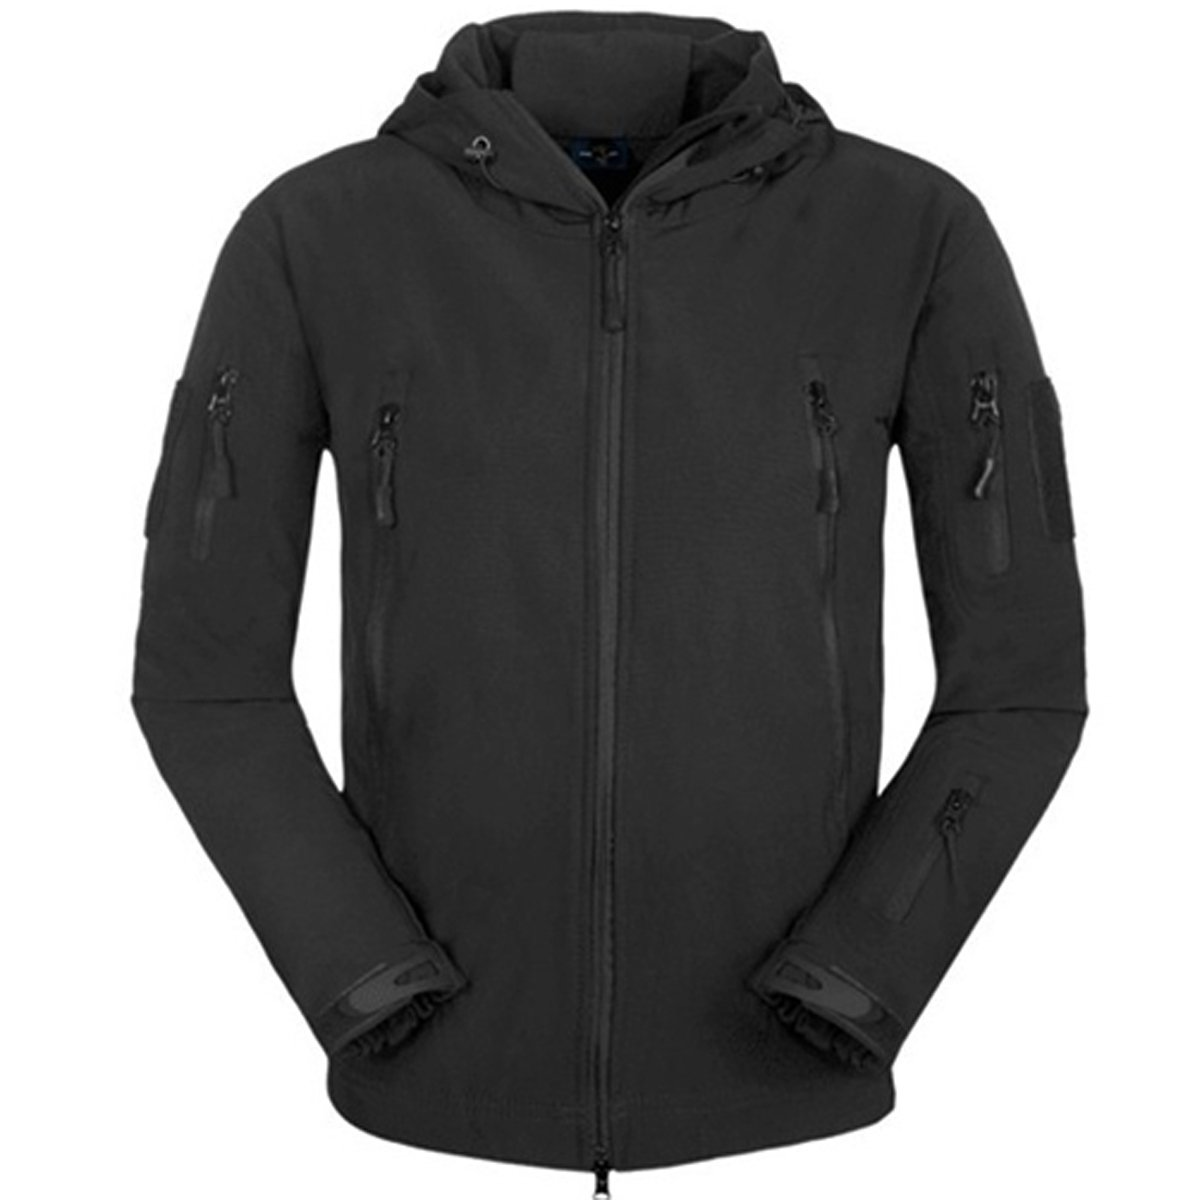 Eglemall Men's Outdoor Hunting Soft Shell Waterproof Tactical Fleece Jackets (Large, Black) by Eglemall